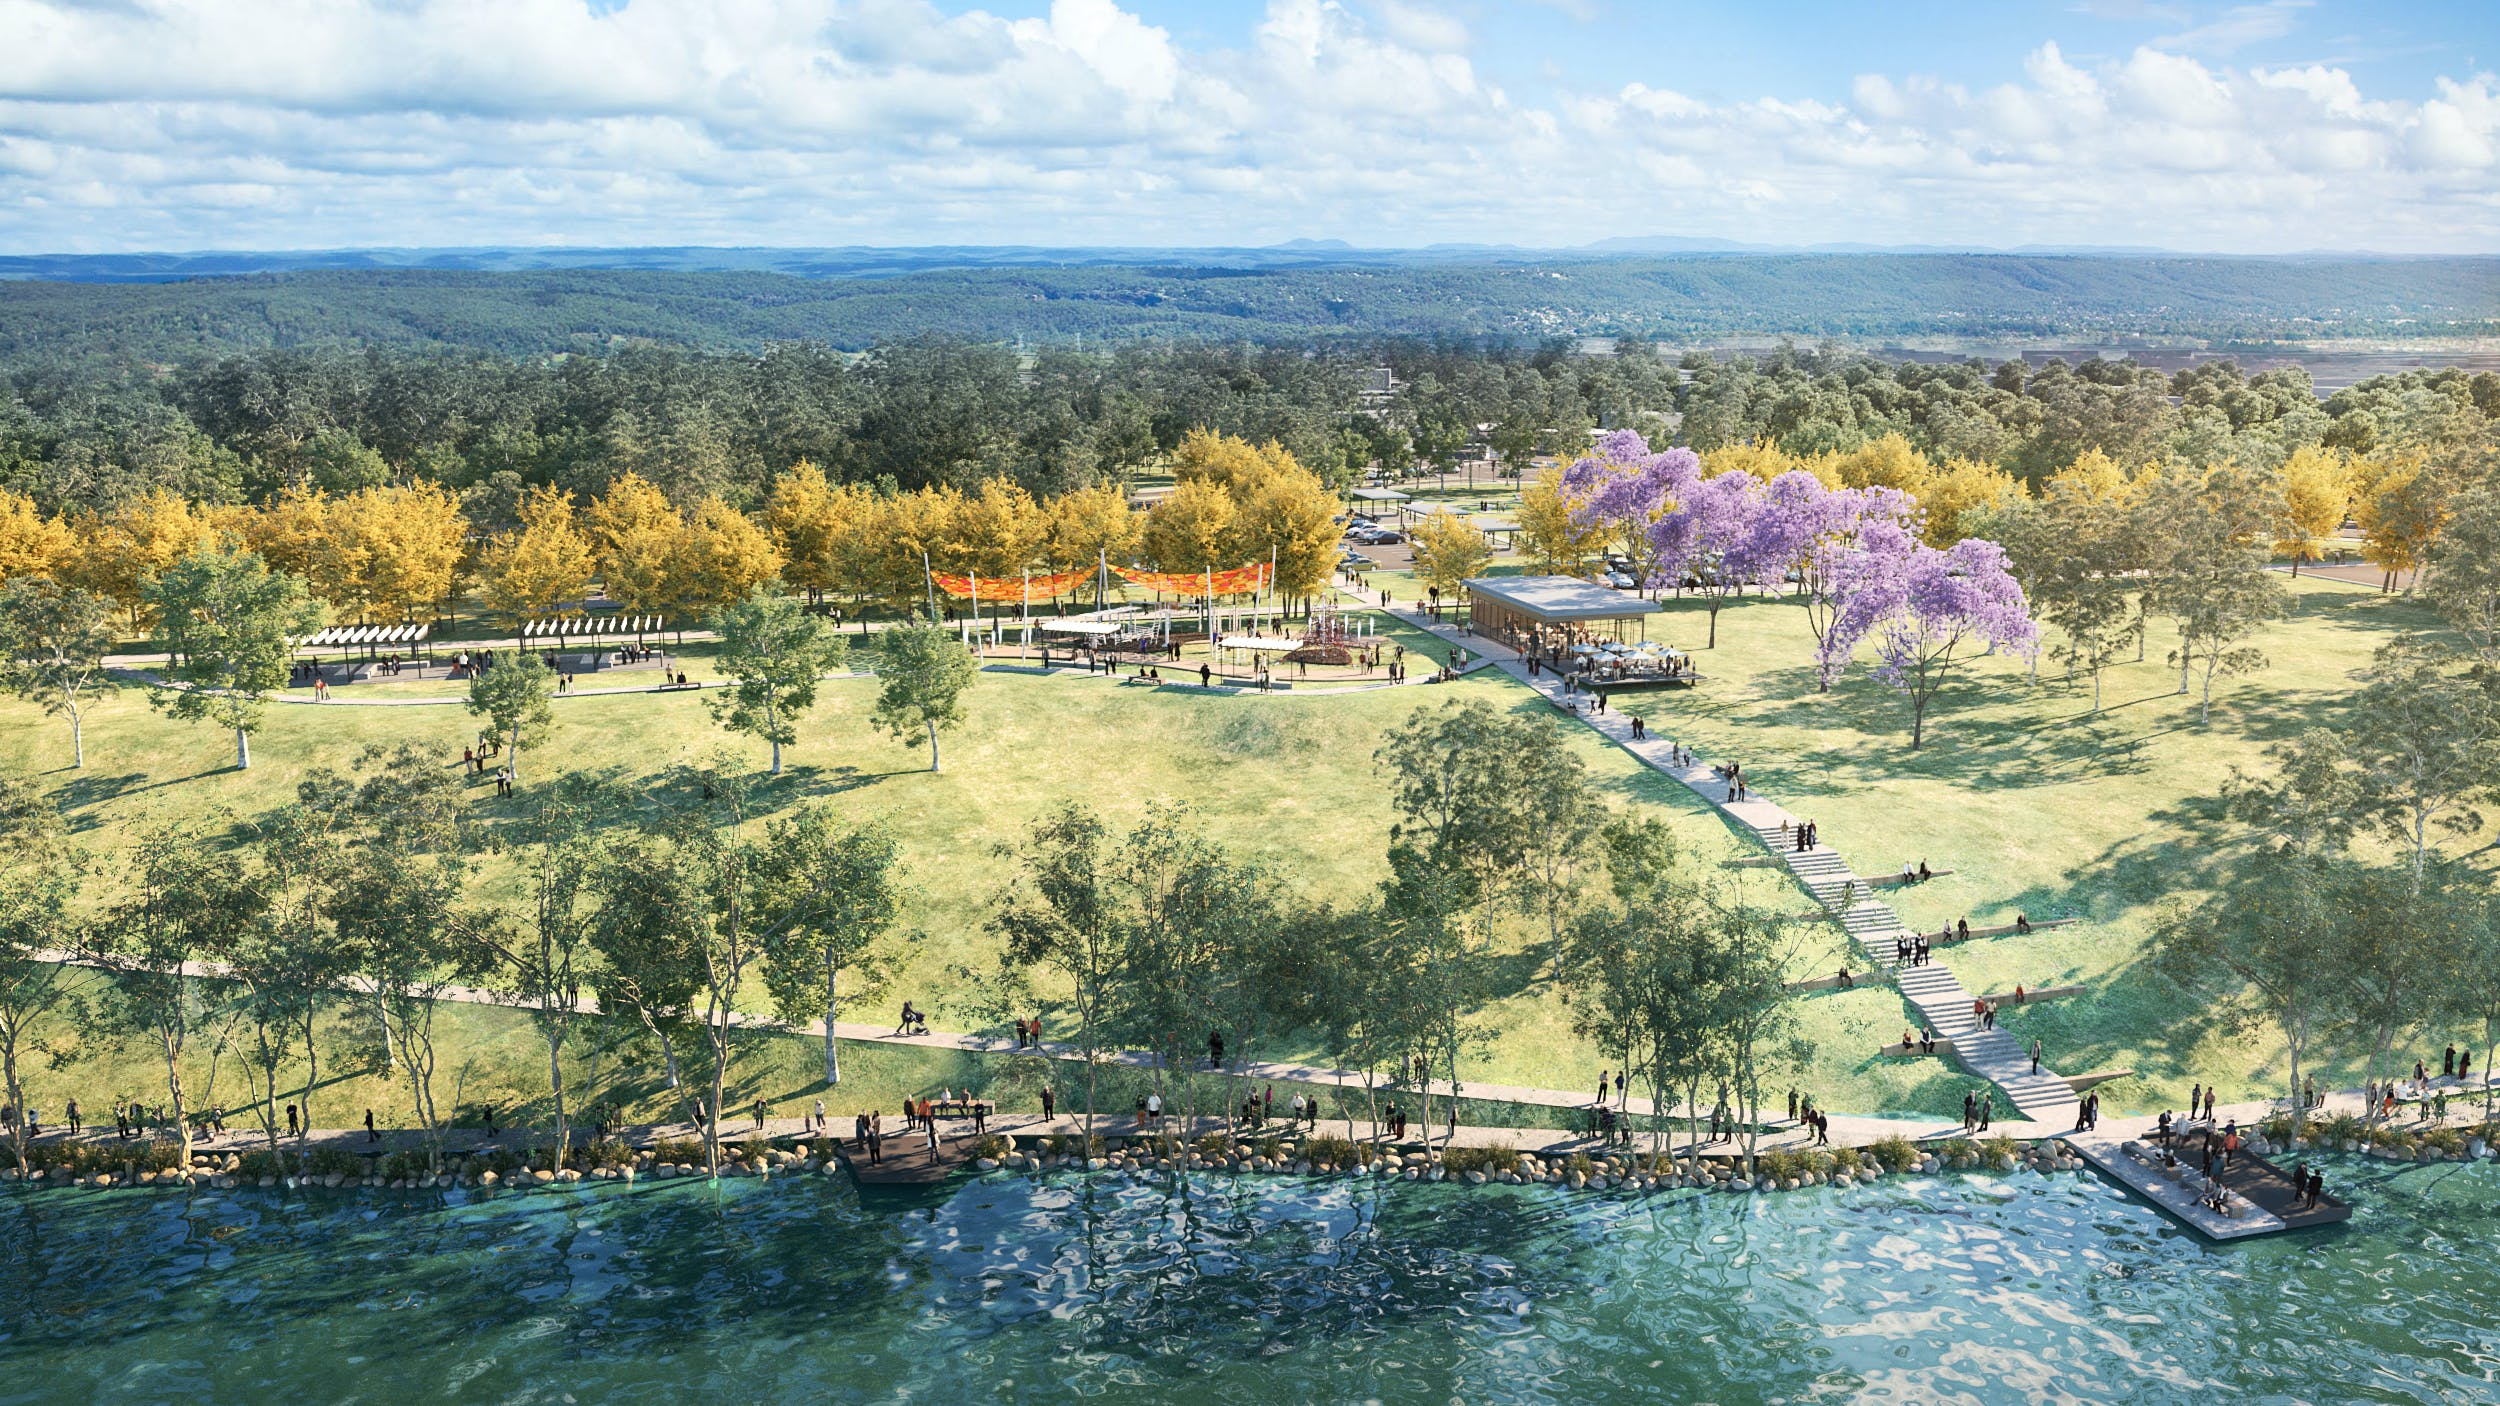 Artist impression of Regatta Park - river view